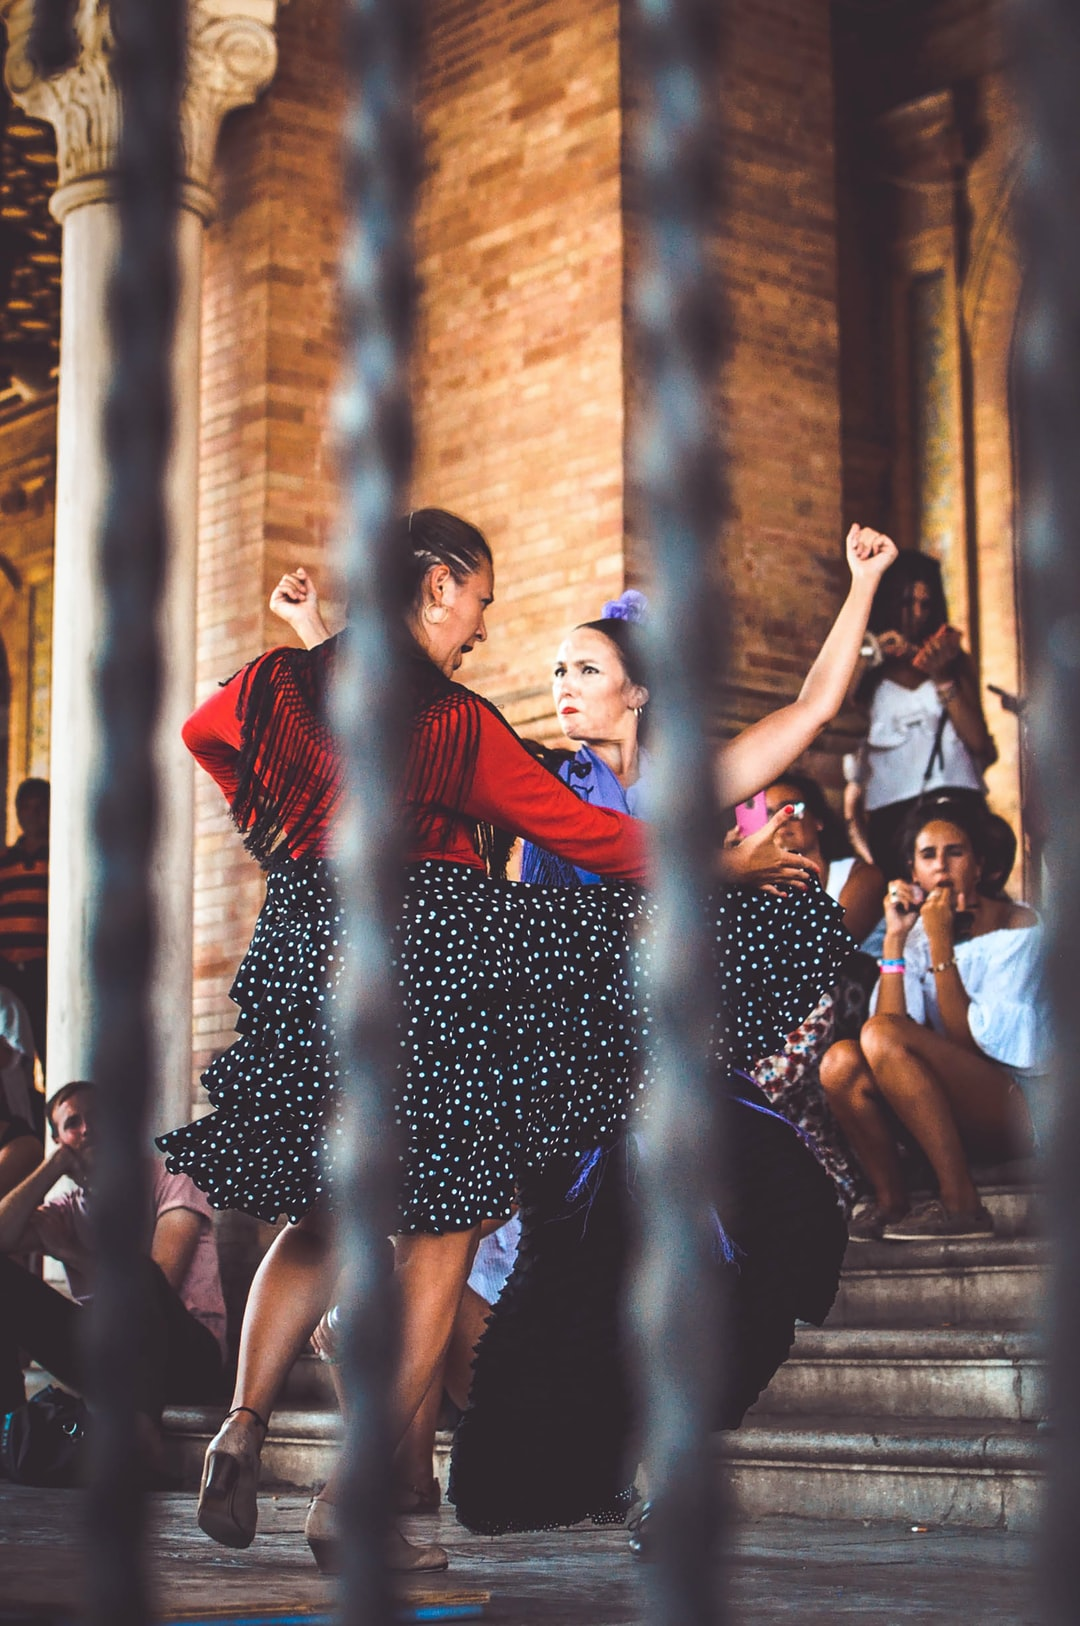 While wondering under the hot sun of Sevilla, I stumbled upon this group of musicians and dancers, under the shadow of the buildings around the Plaza of Espana, making it a heart warming feeling thanks to the music… A musical and dancing stop in time.